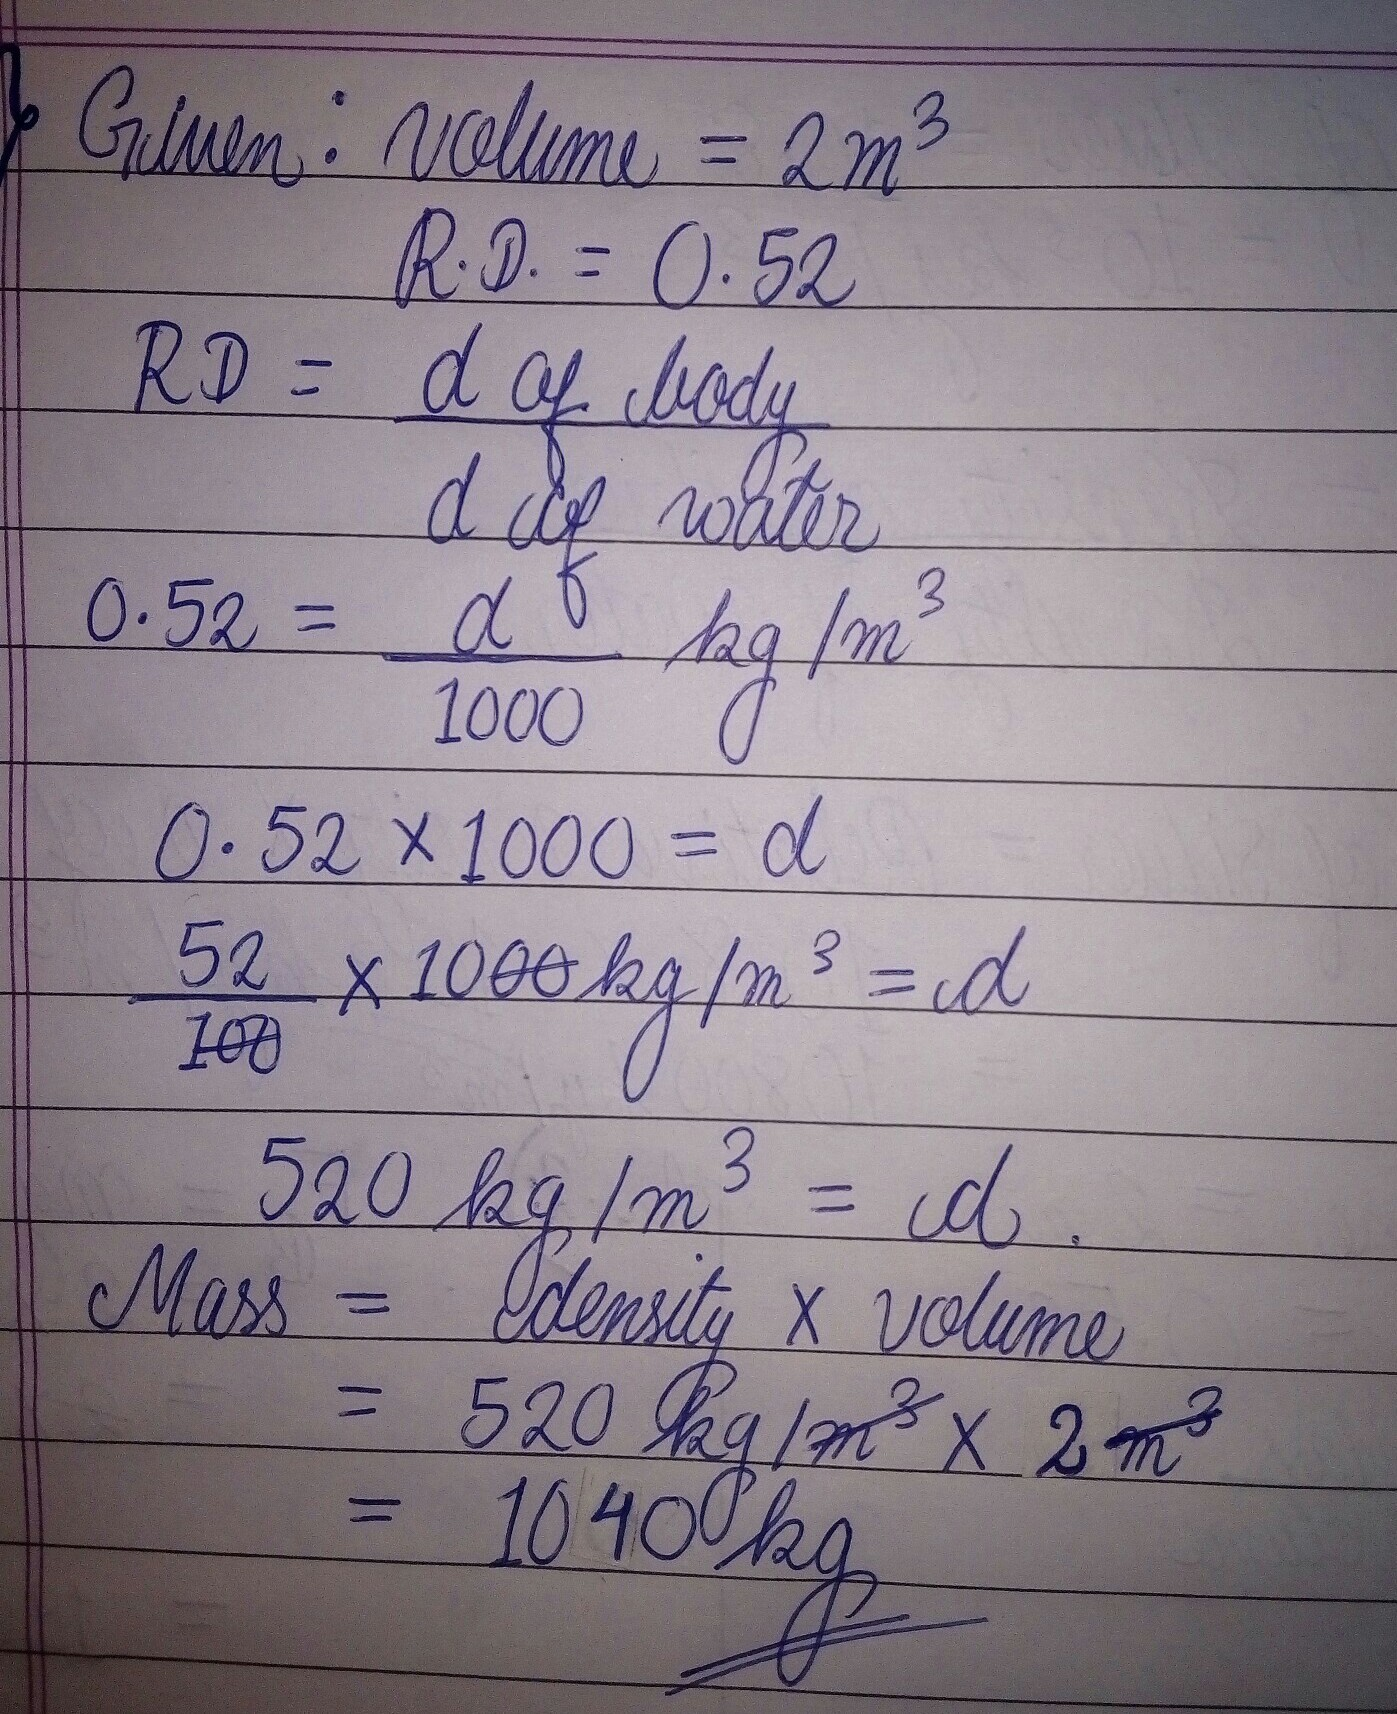 calculate the mass of a body whose volume is 2m3 and RD is 0 52